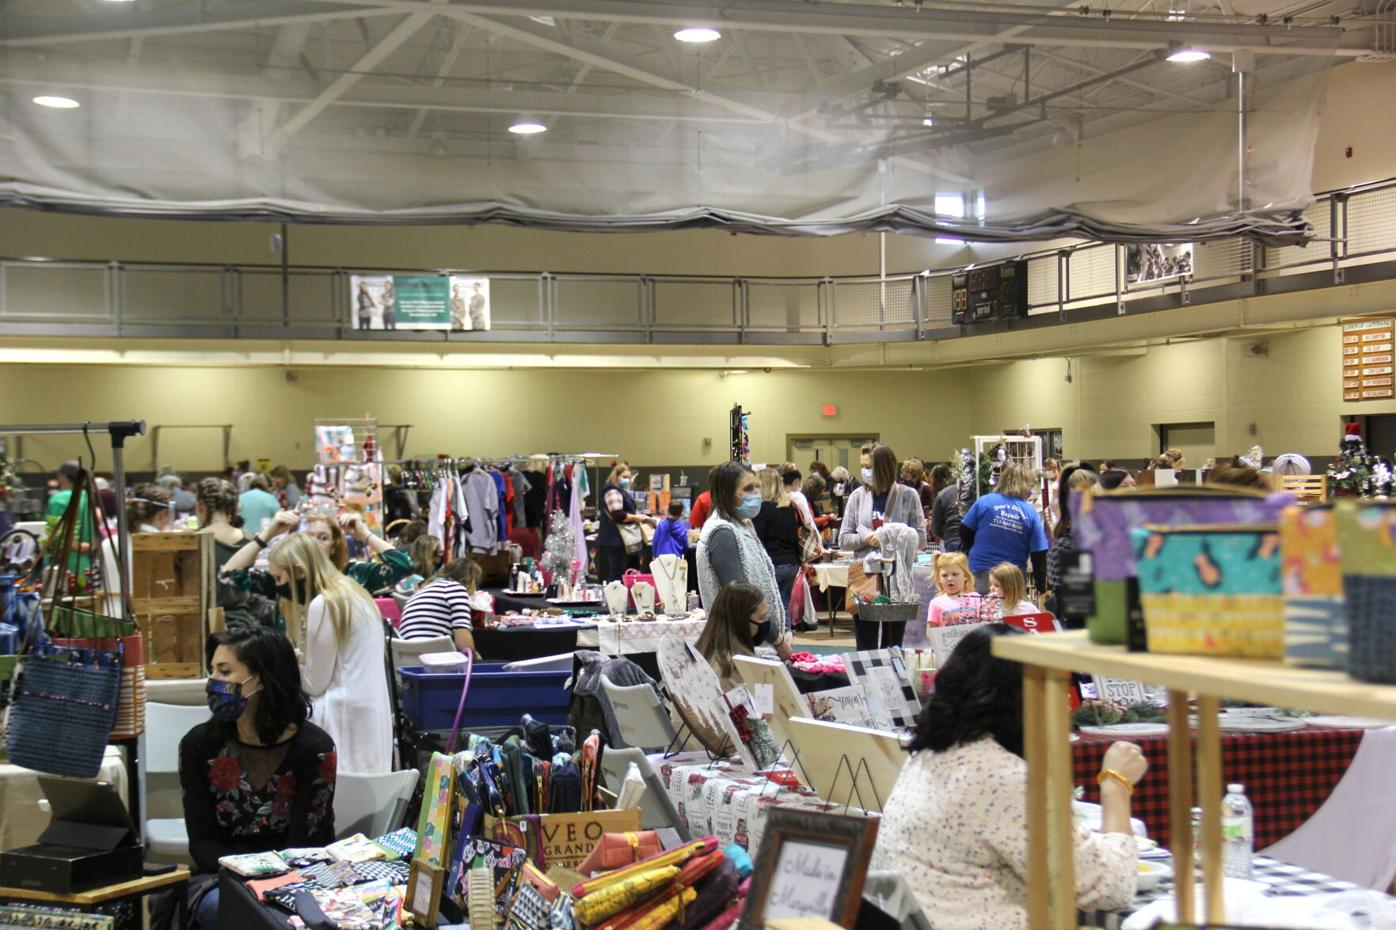 11-19-20 Craft Fair 5.JPG